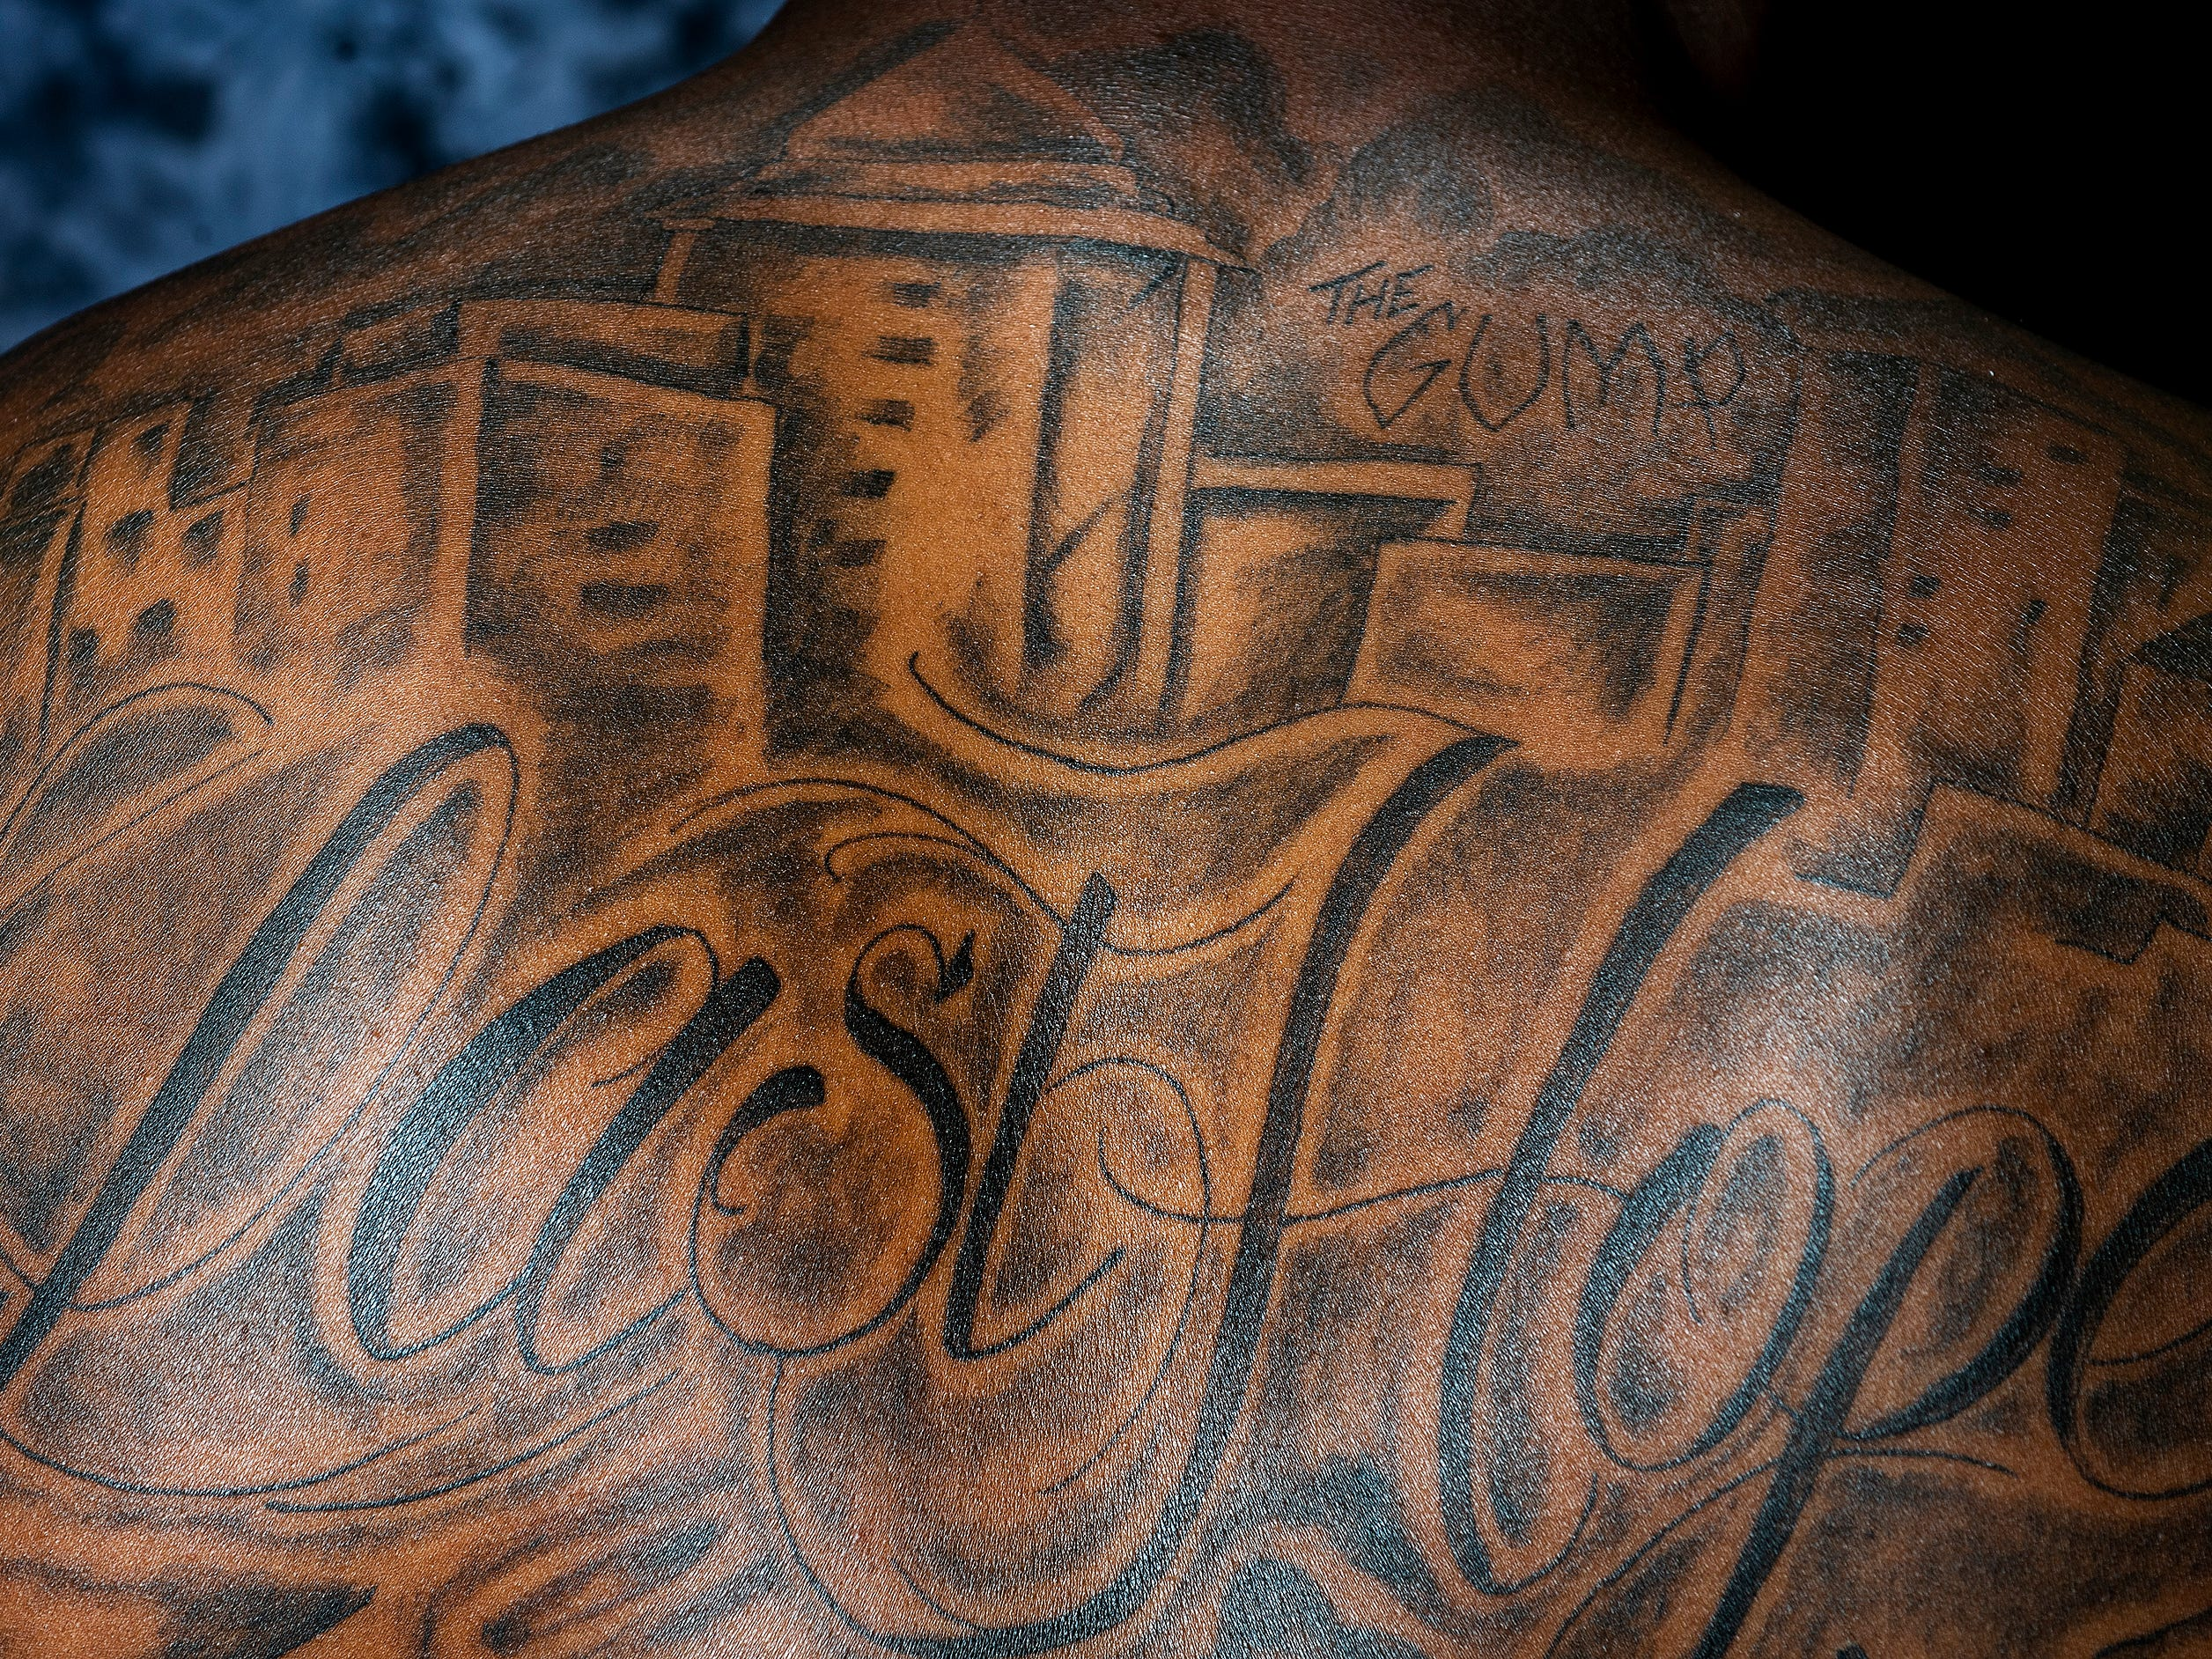 Alabama linebacker Mack Wilson, of Montgomery, shows his tattoos which are dedicated to his friends Rod Scott and Shaquille Johnson.